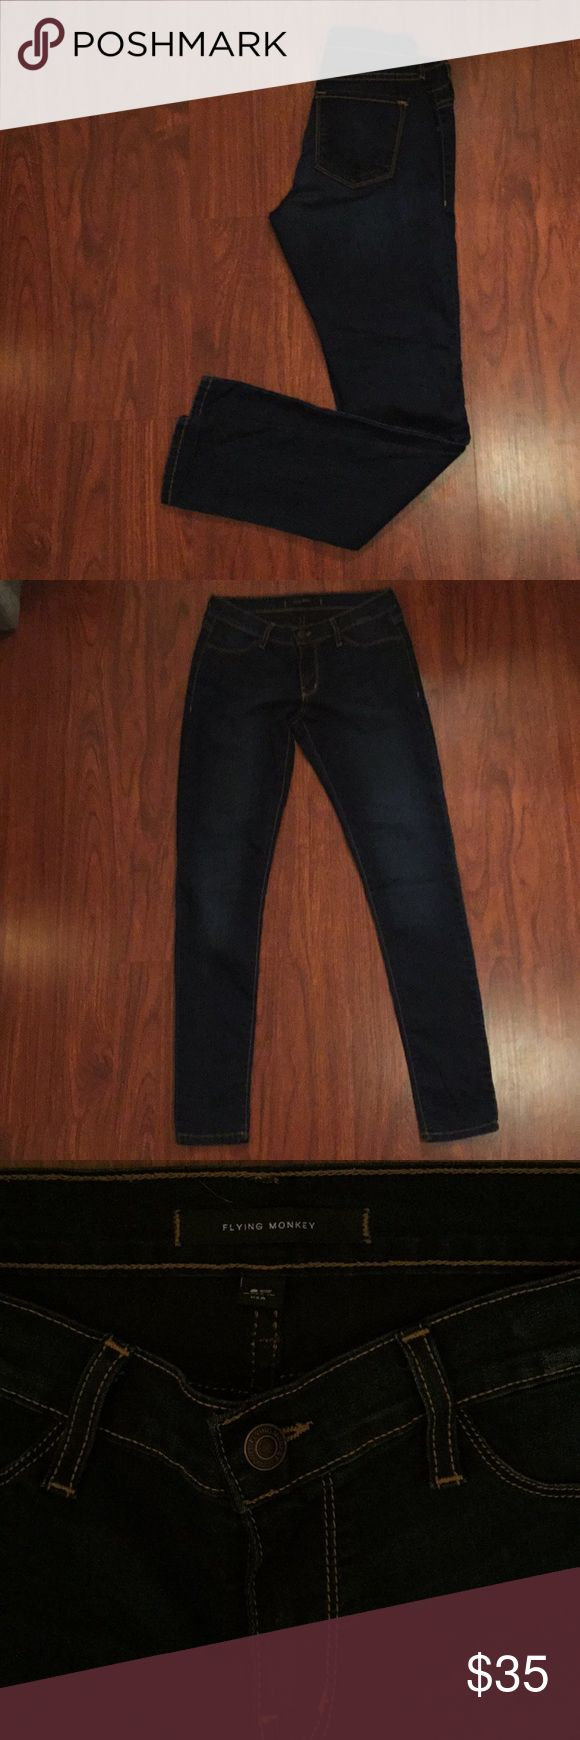 NEW WITHOUT TAG flying monkey skinnies NWOT! Size 28. Amazing dark wash skinnies with gold stitching details. Great stretch to them, fit true to size. Flying Monkey Jeans Skinny